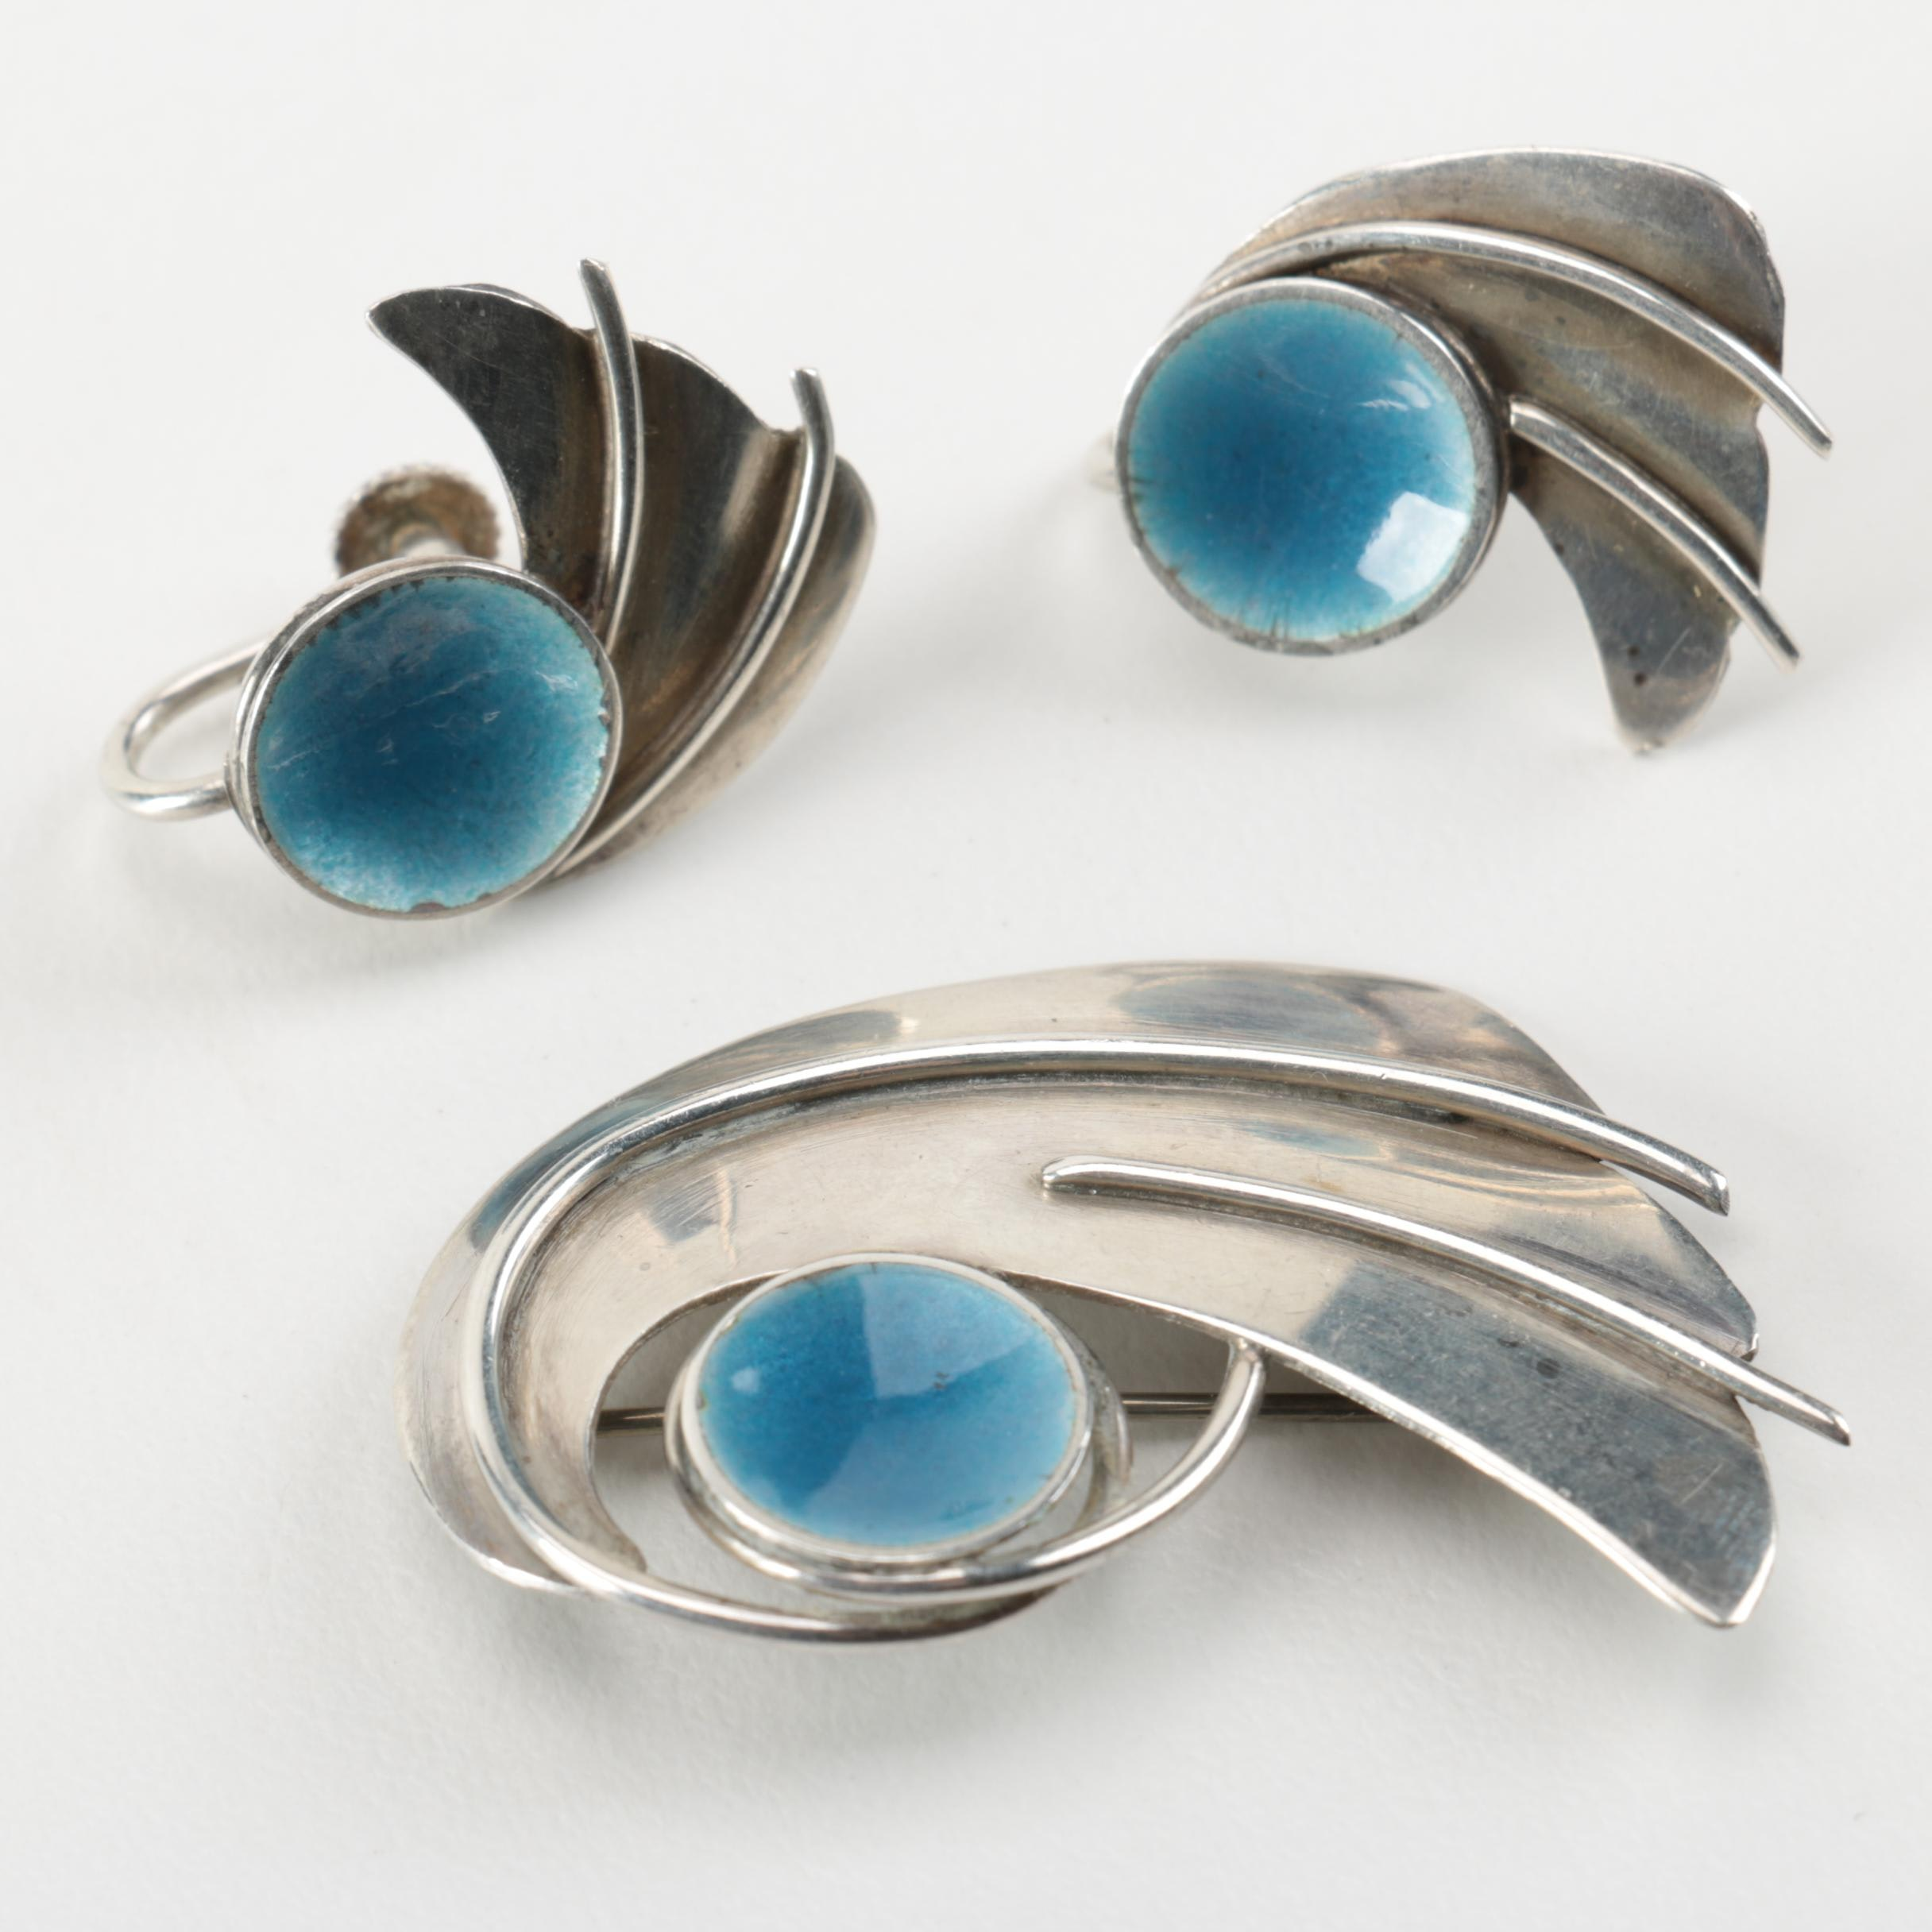 John Bryan Modernist Style Sterling Silver Matching Brooch and Earrings